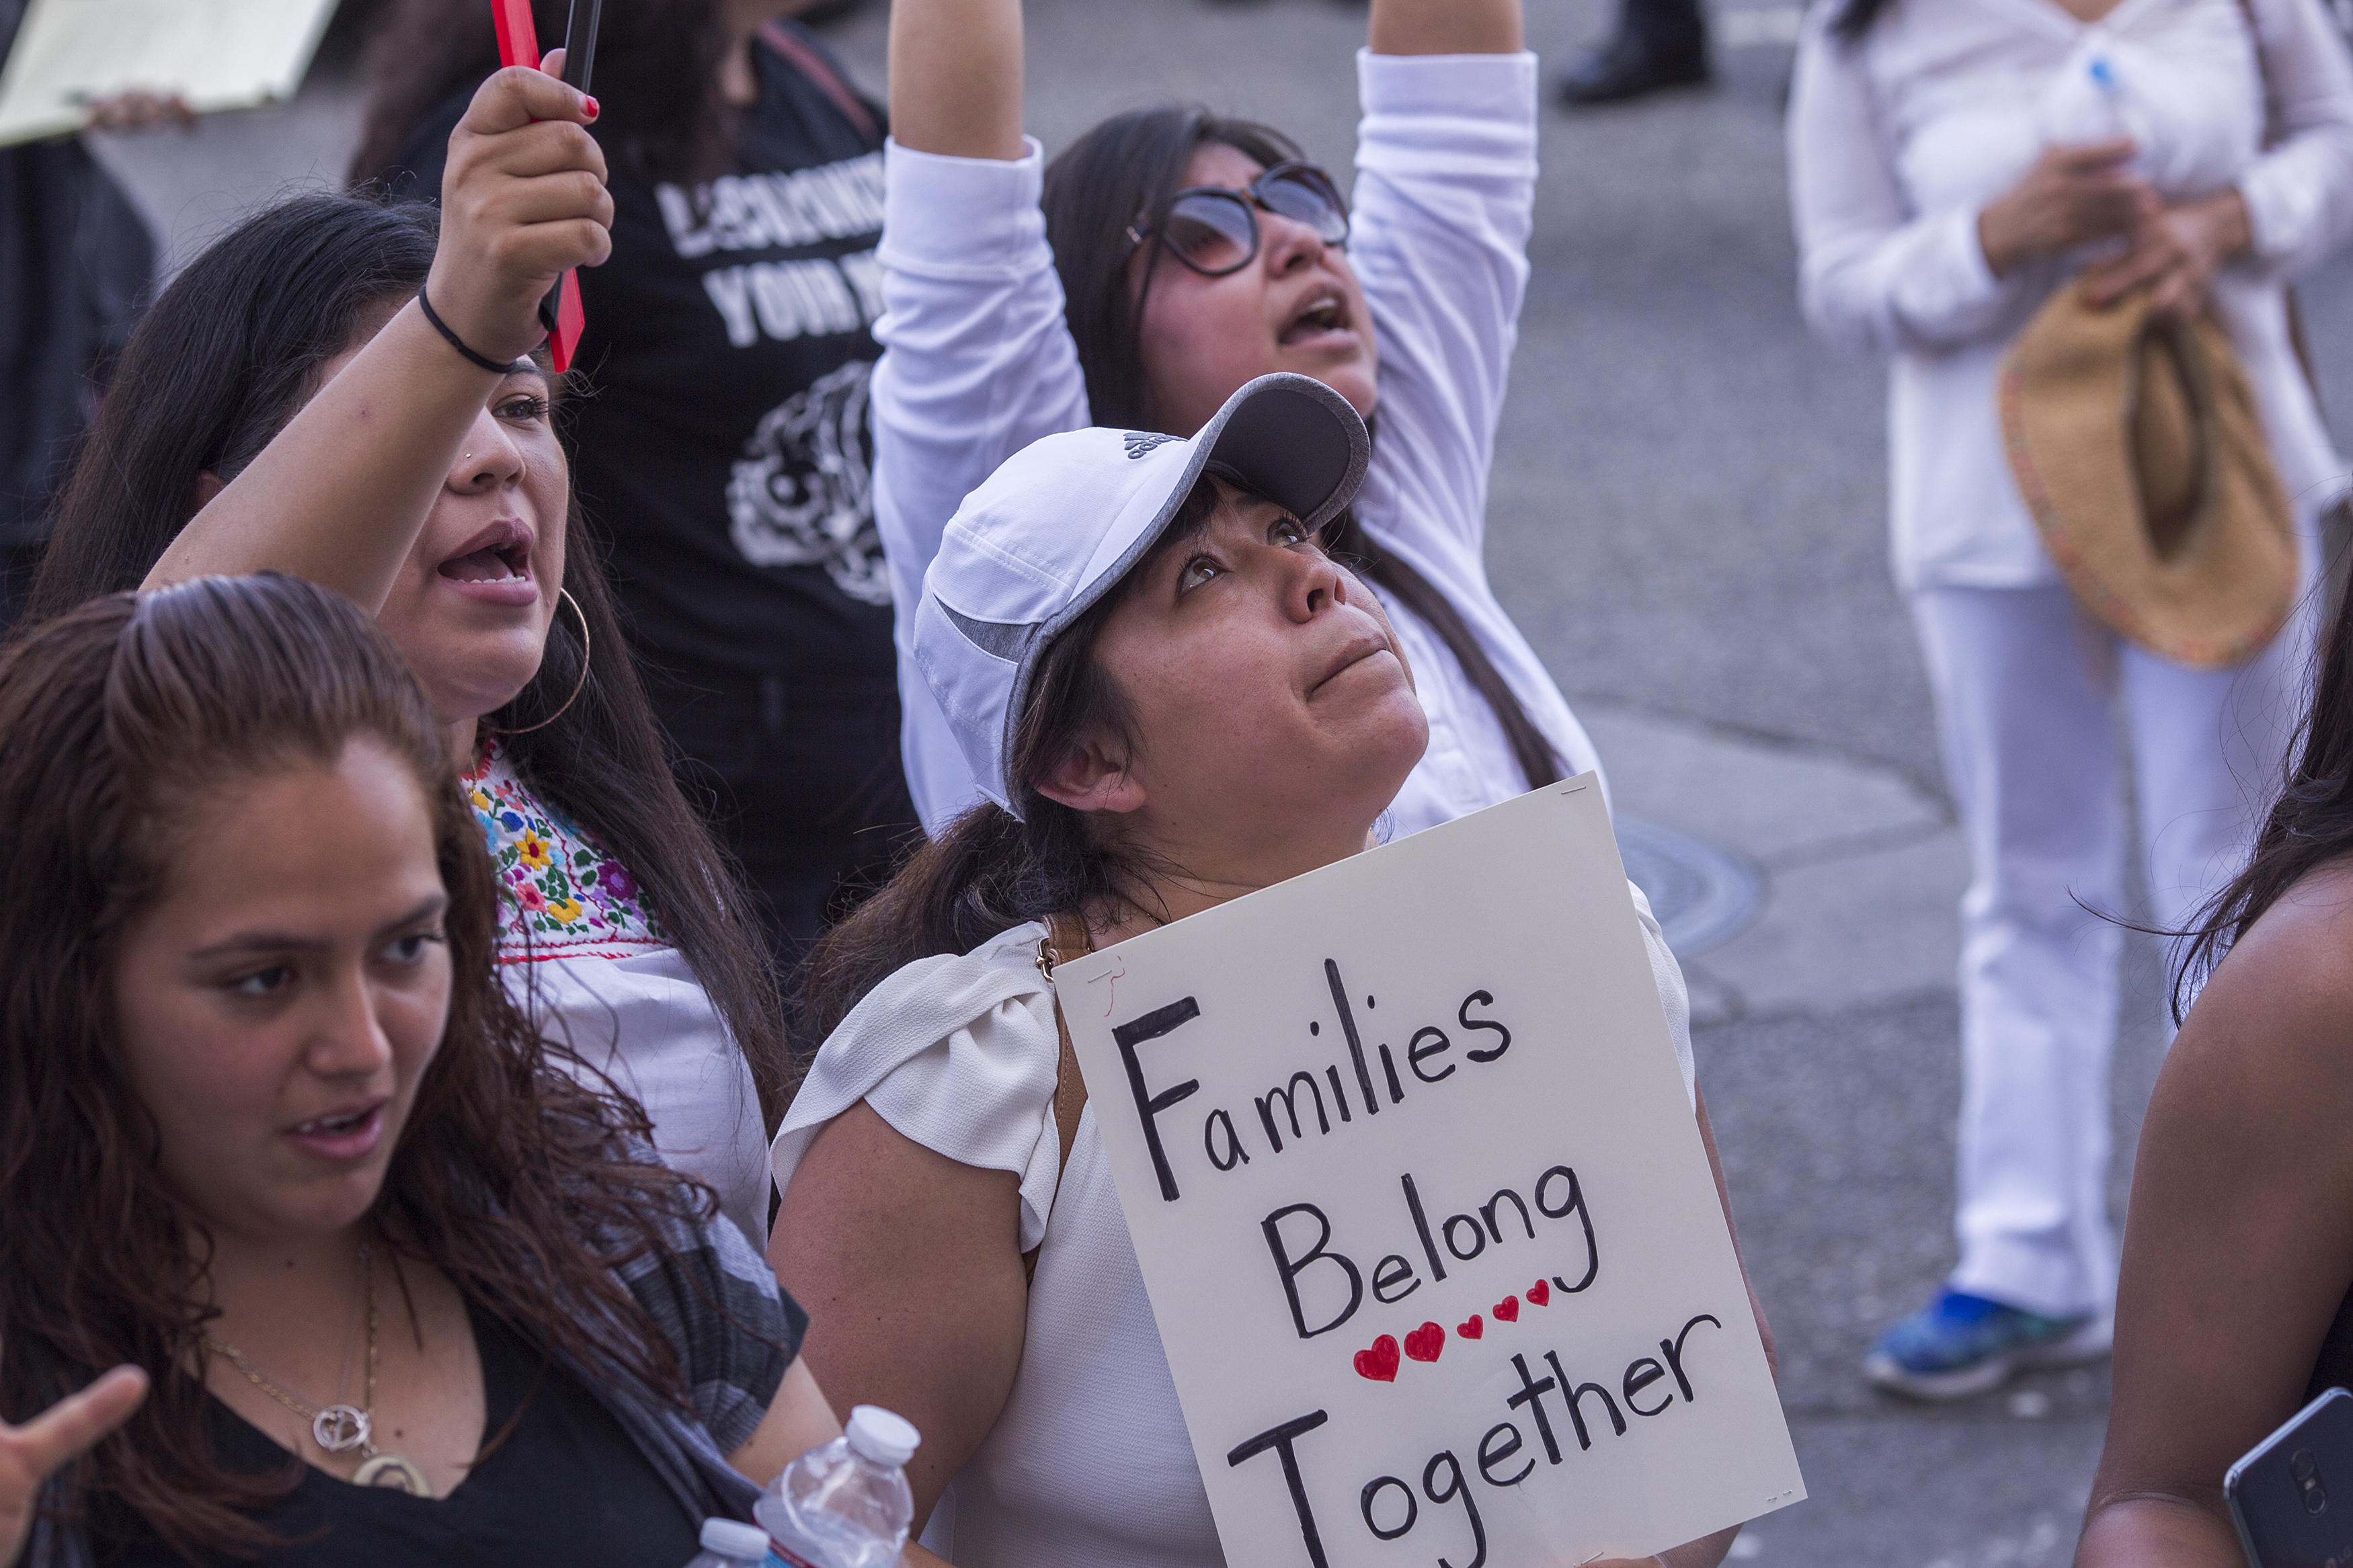 LOS ANGELES, CA - JUNE 30: People demonstrate and call out words of encouragement to immigrants held inside the Metropolitan Detention Center after marching to decry aggressive Trump administration immigration and refugee policies on June 30, 2018 in Los Angeles, California. Although President Trump was forced to reverse his policy of removing all children from their immigrant or asylum-seeking parents, little clarity appears to be seen as to how agencies can fulfill a court order to reunite thousands of children and parents detained far apart by multiple agencies. Yesterday, the Justice Department filed papers in a Los Angeles federal court to have families arrested for illegal border crossings incarcerated together indefinitely. The rally is one of more than 700 such protests being held throughout the nation.  (Photo by David McNew/Getty Images)